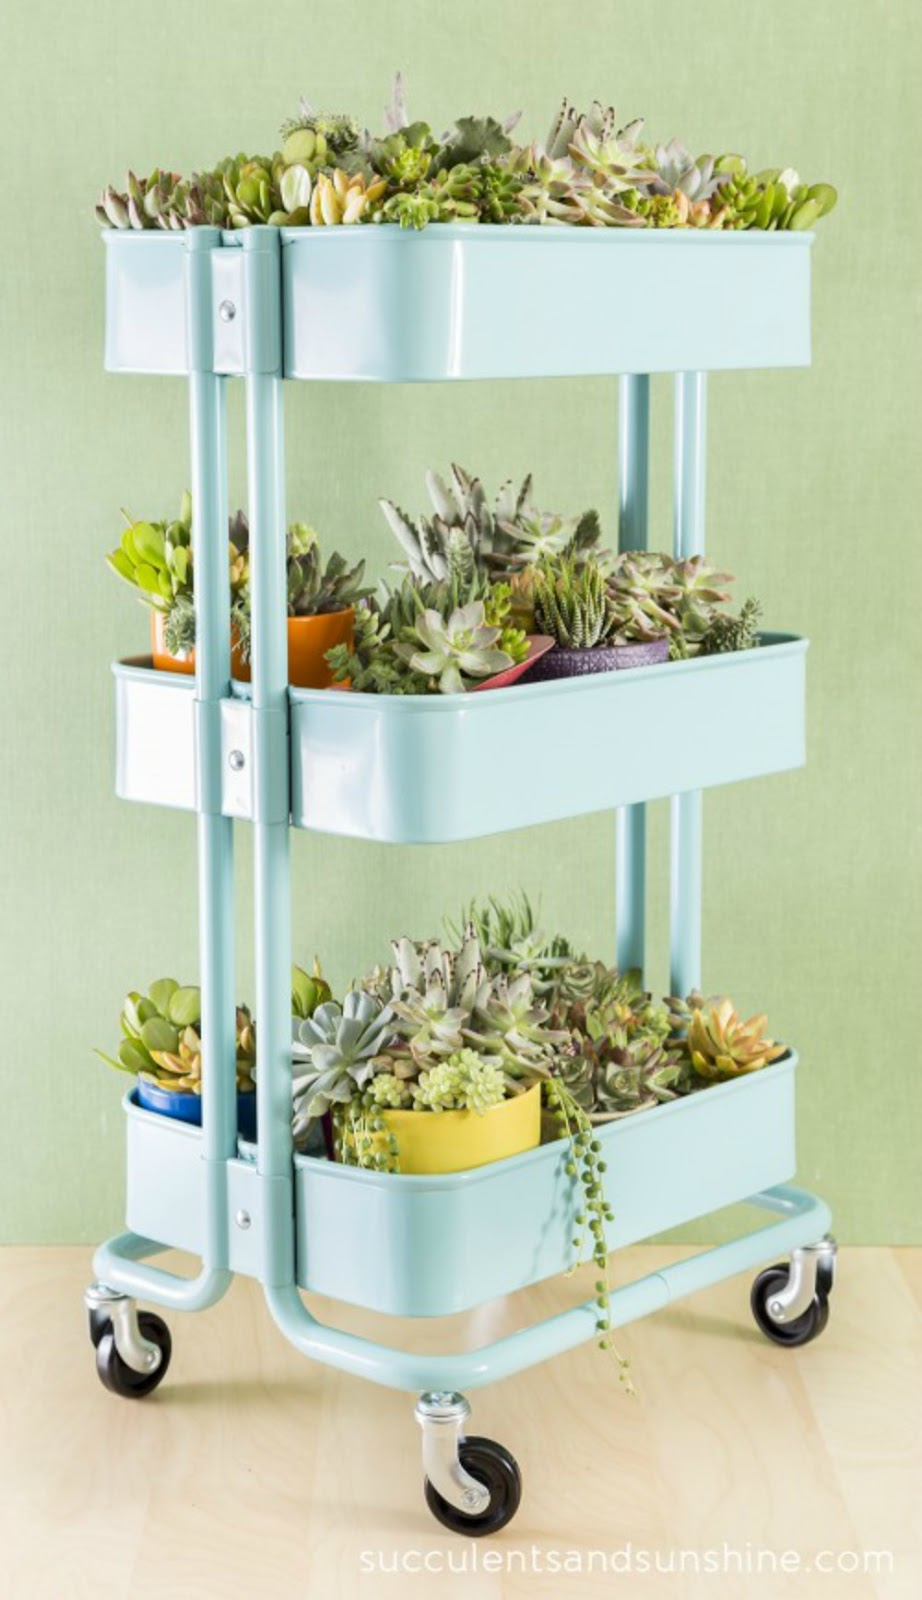 14 Ways to Display Succulents - Succulent Bar Cart